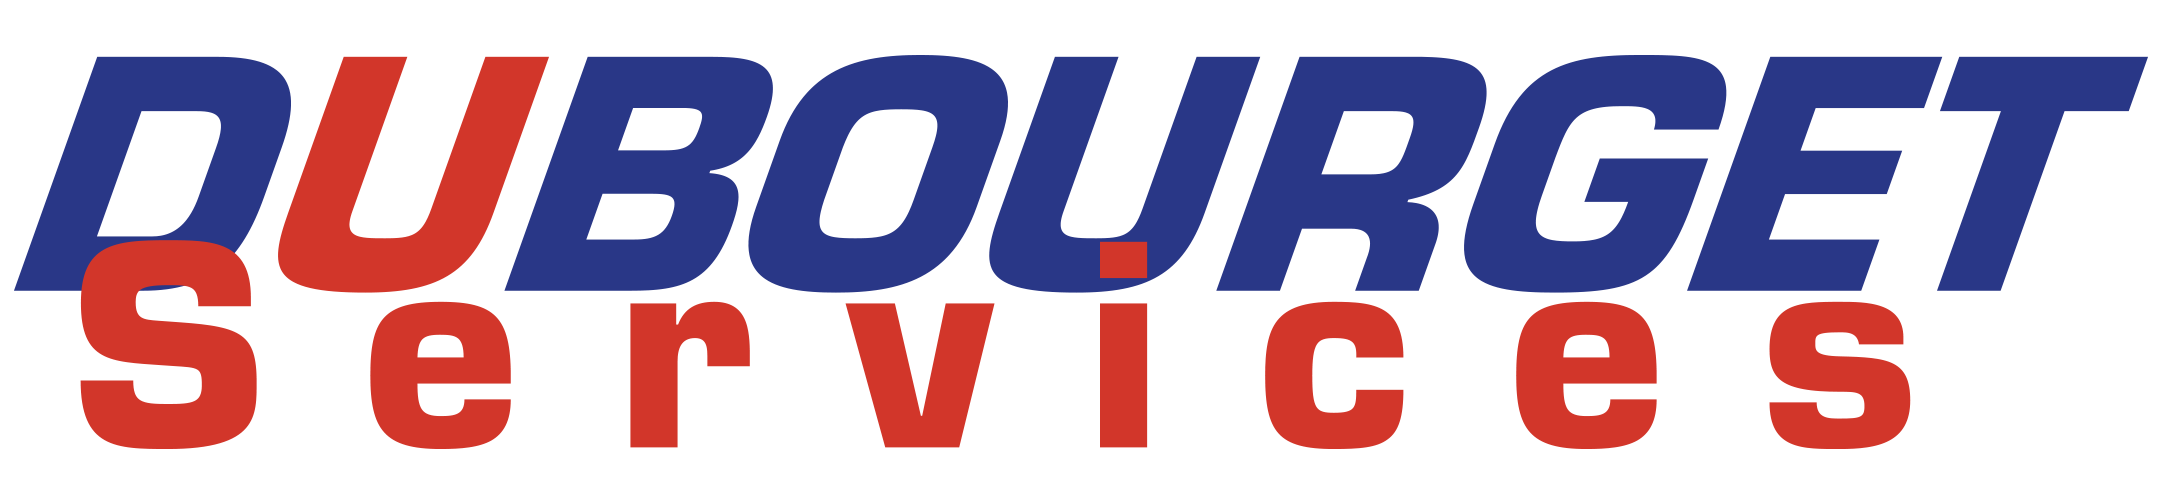 Logo Dubourget Services